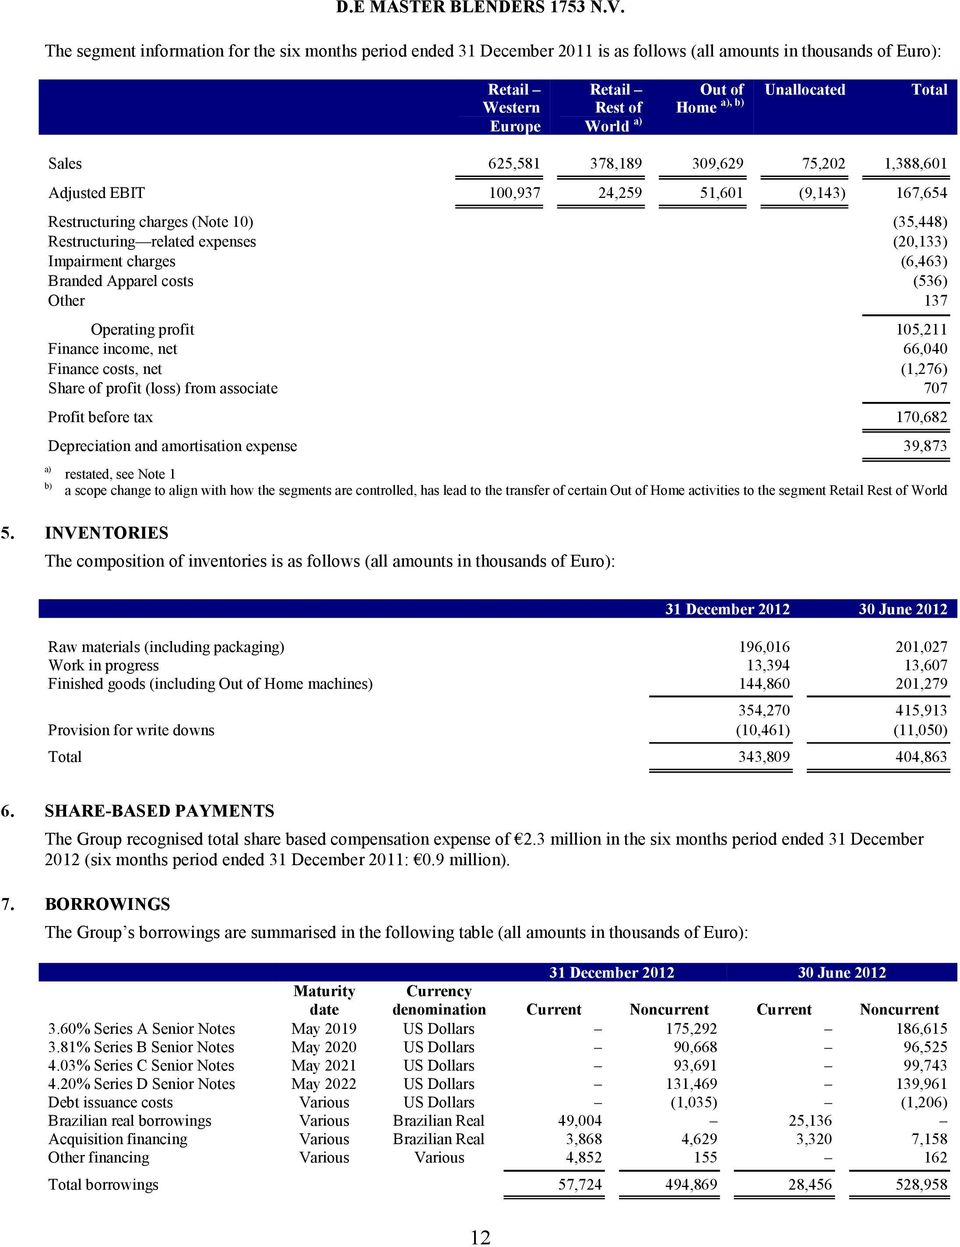 charges (6,463) Branded Apparel costs (536) Other 137 Operating profit 105,211 Finance income, net 66,040 Finance costs, net (1,276) Share of profit (loss) from associate 707 a) Profit before tax